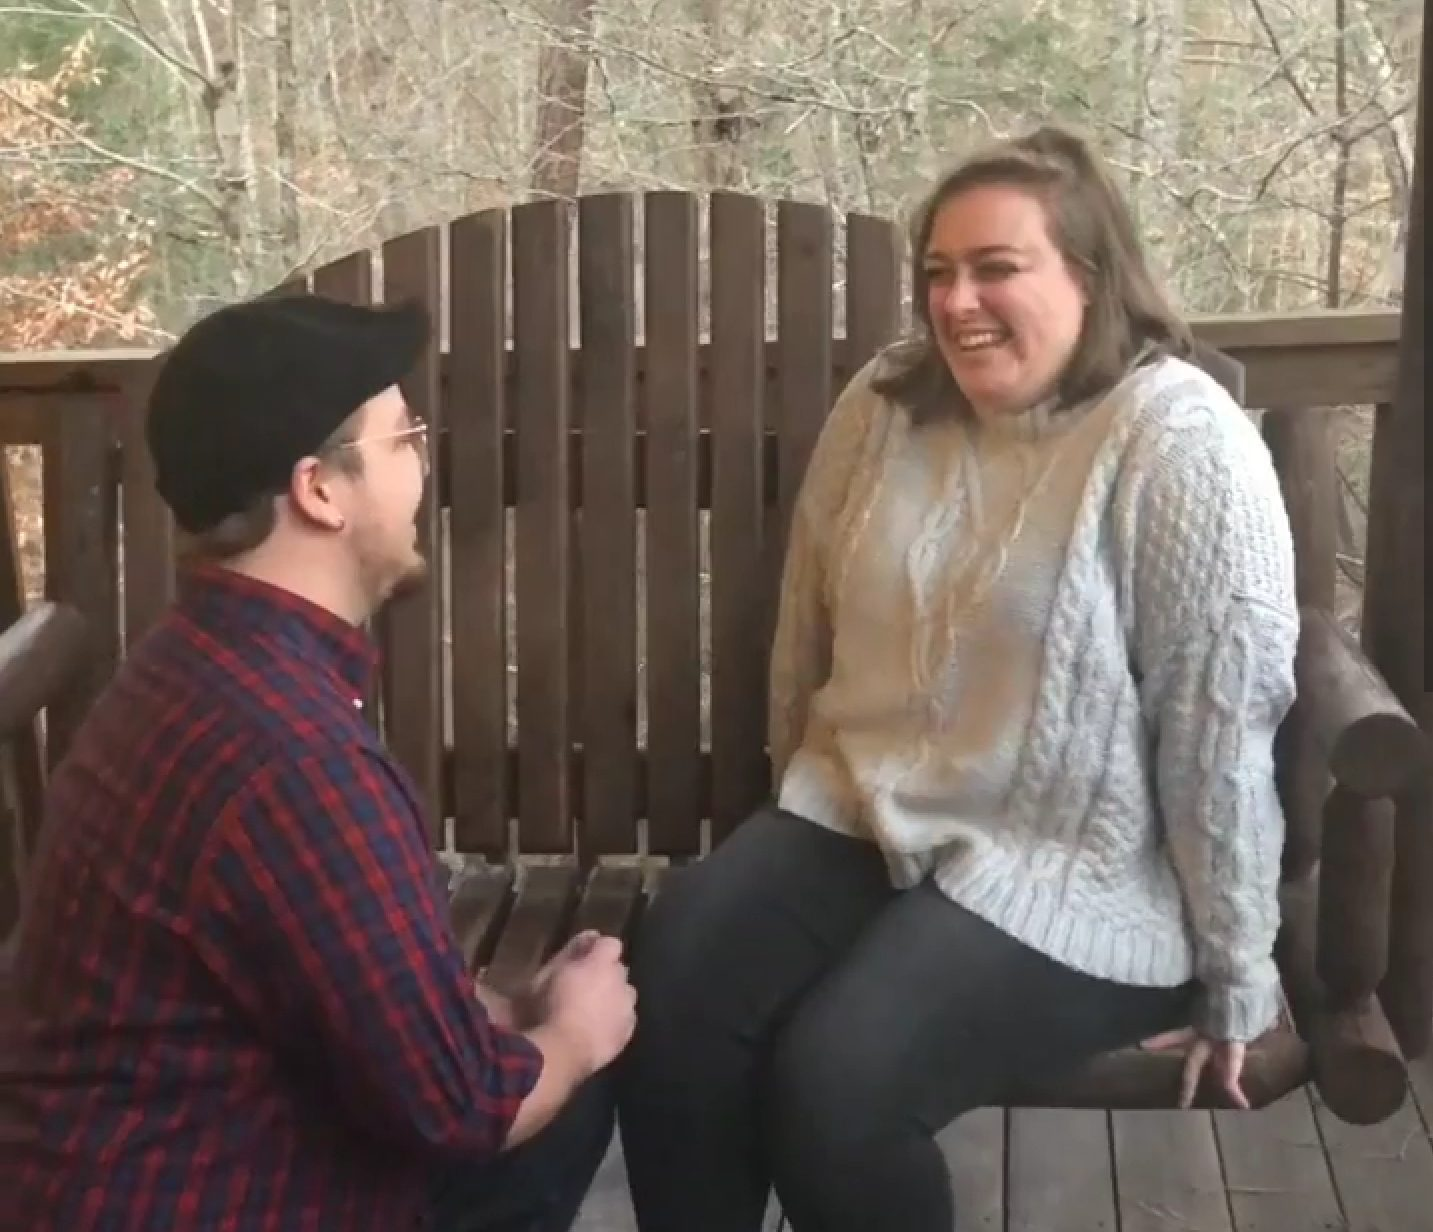 Engagement Proposal Ideas in Sevierville, TN